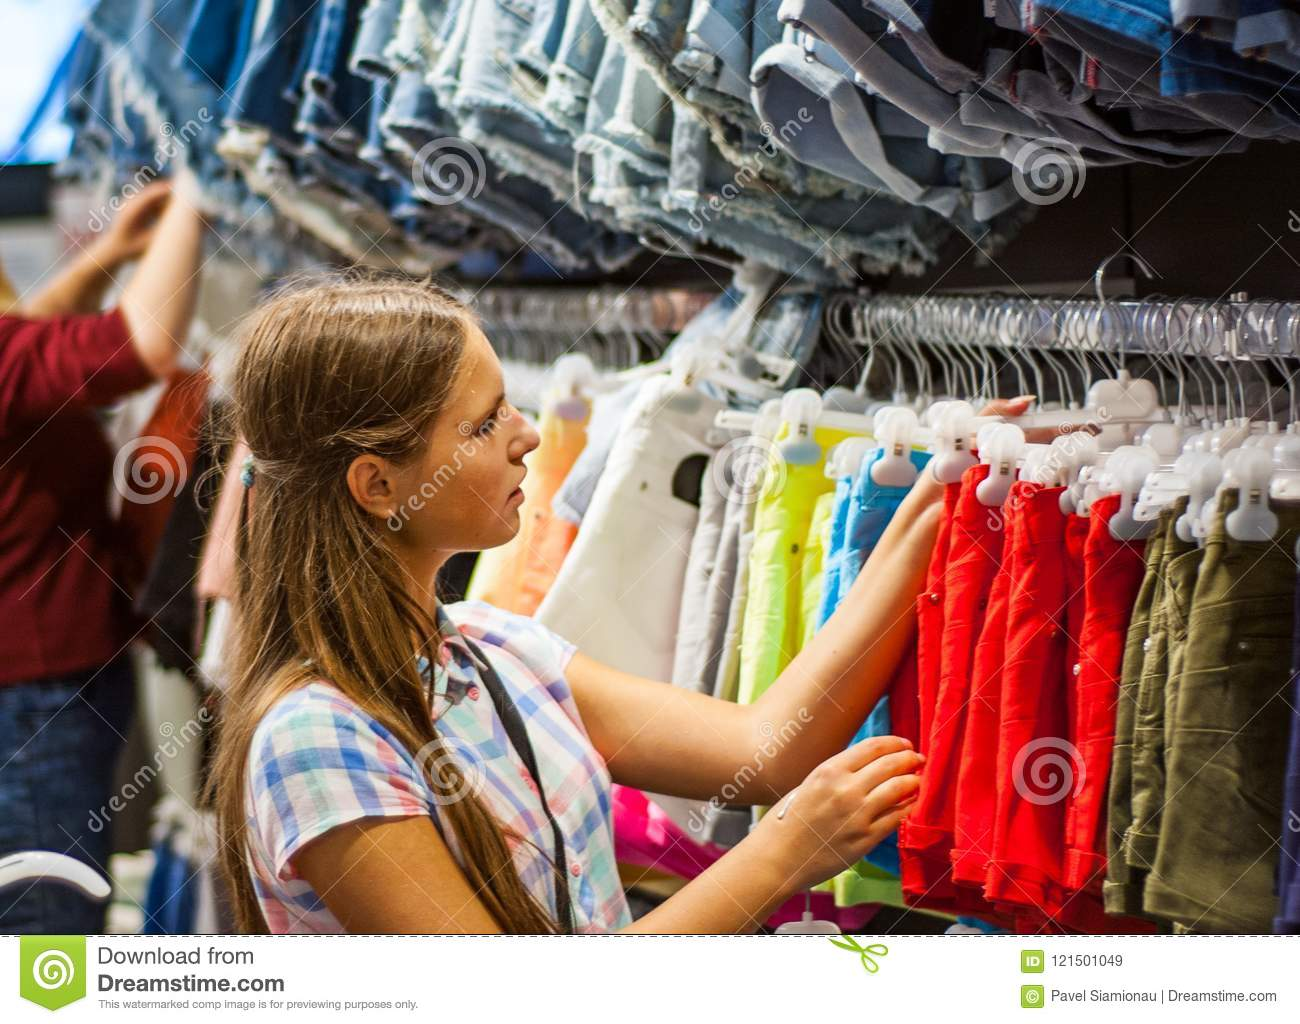 df15f19d9 Teenage Girl Shopping For Clothes Inside Clothing Store Stock Image ...